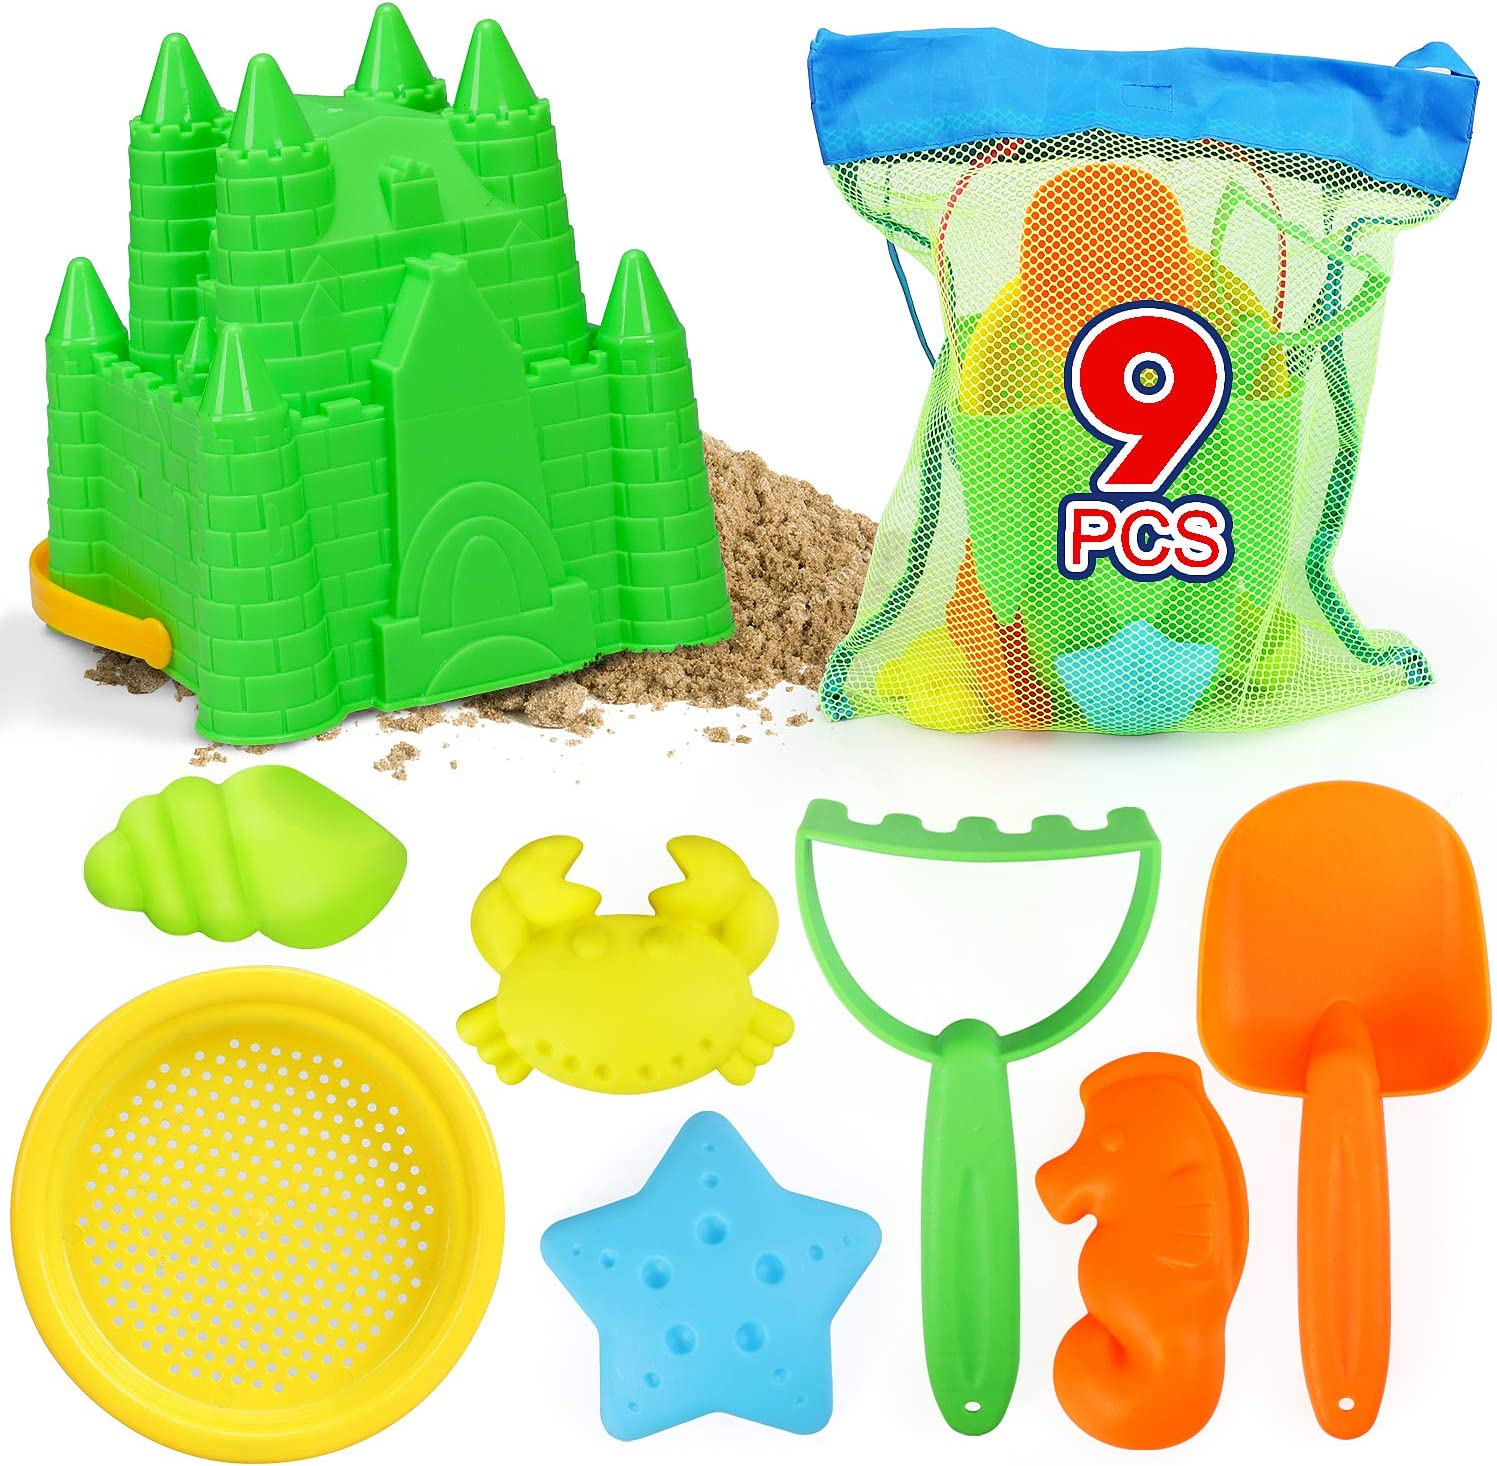 and Sand Castle Toys for Beach TOY Life Sand Toys for Kids Toddlers Rake Sandbox Toys Set with Bonus Waterproof Carrying Net 9 Beach Toys Includes Beach Sand Castle Bucket,Toy Shovel Toy Sifter